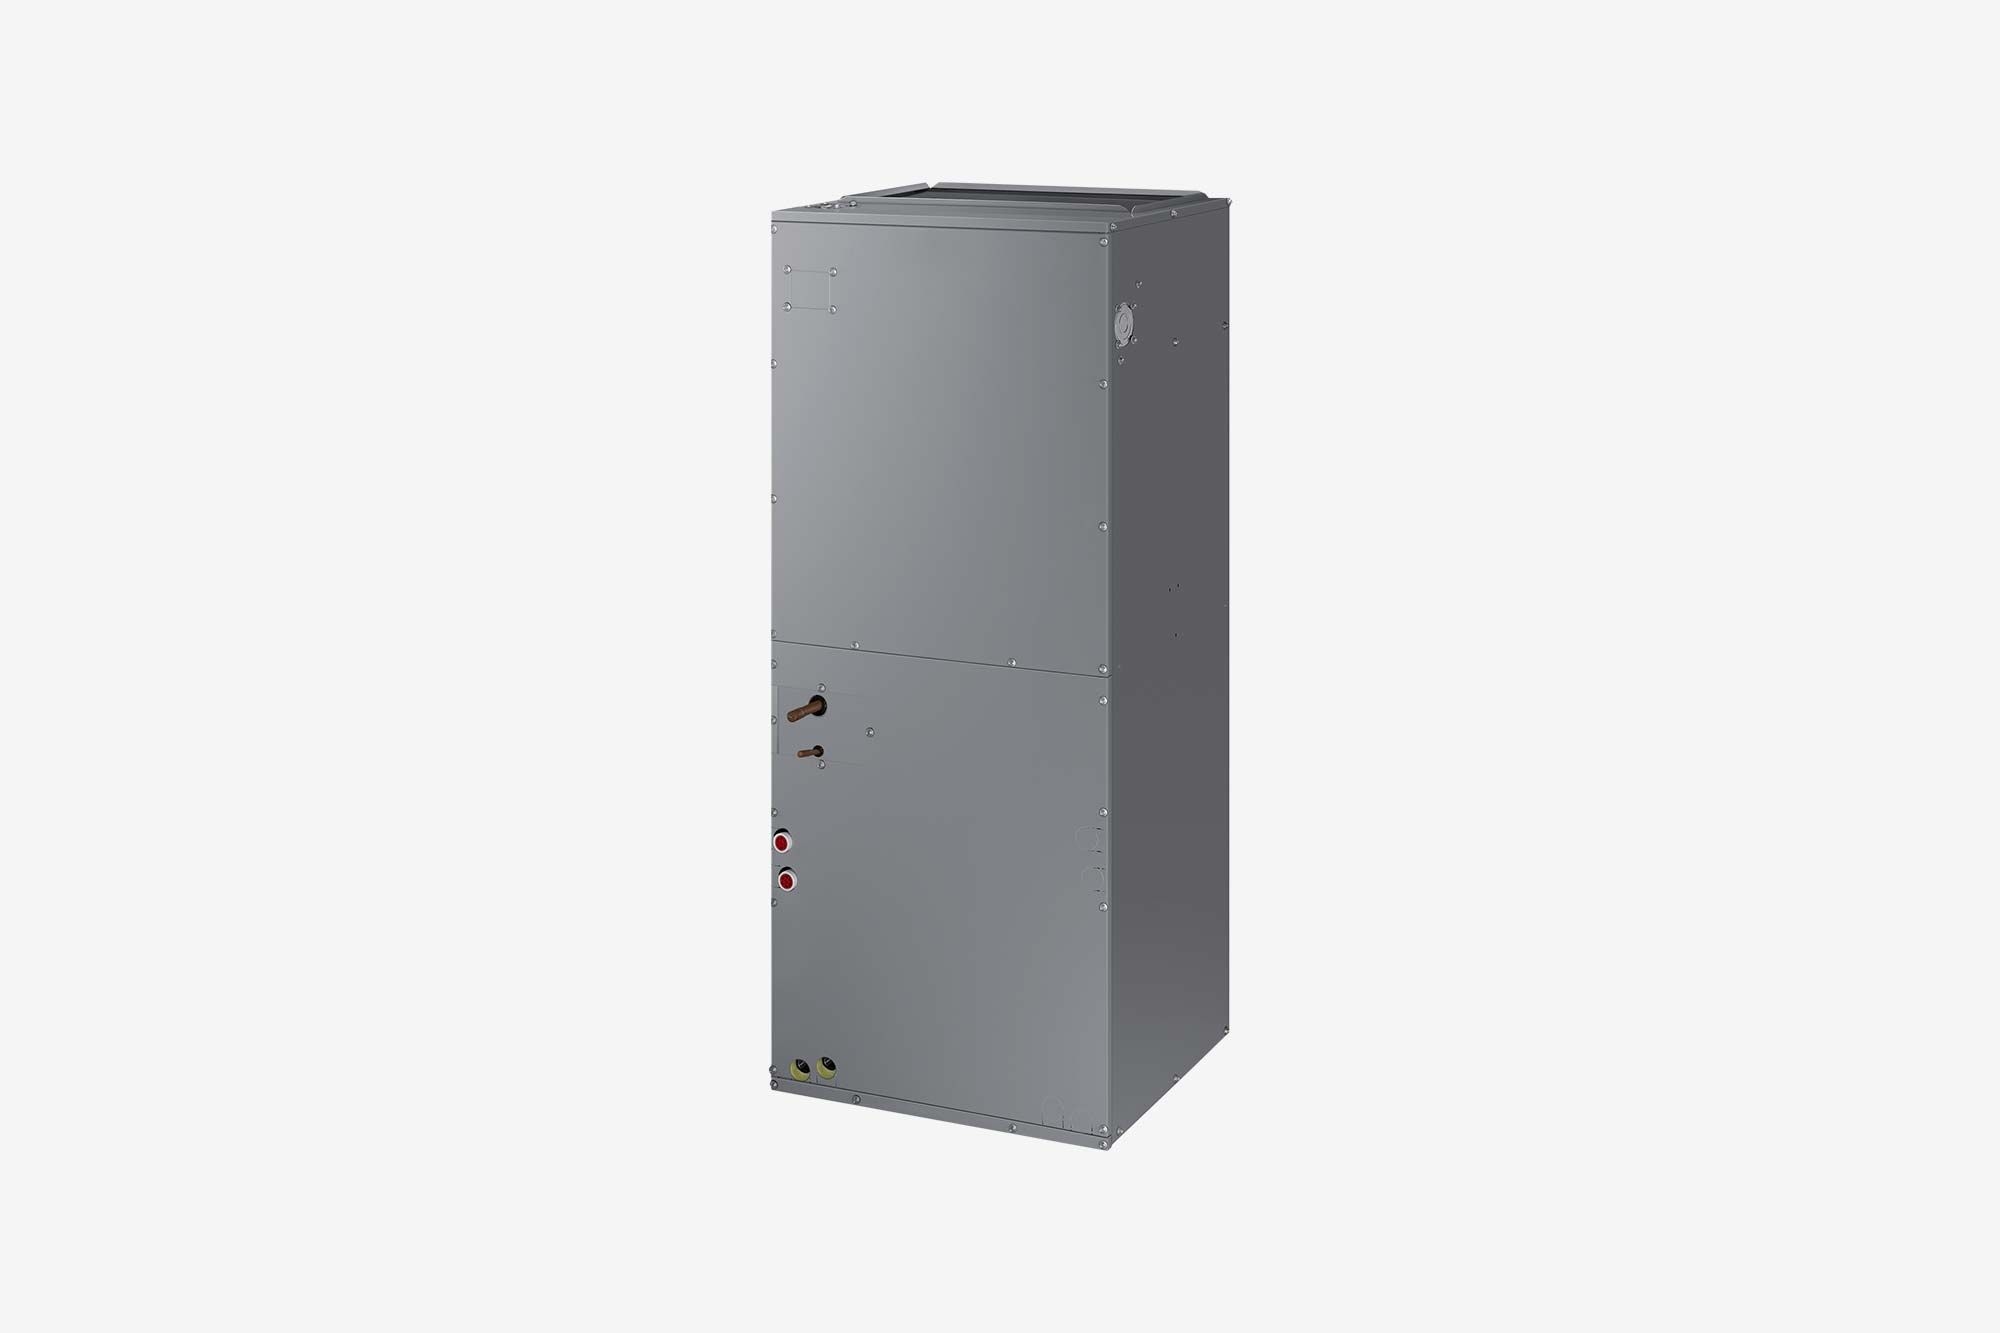 Samsung-Commercial-Multi-Position-Air-Handler